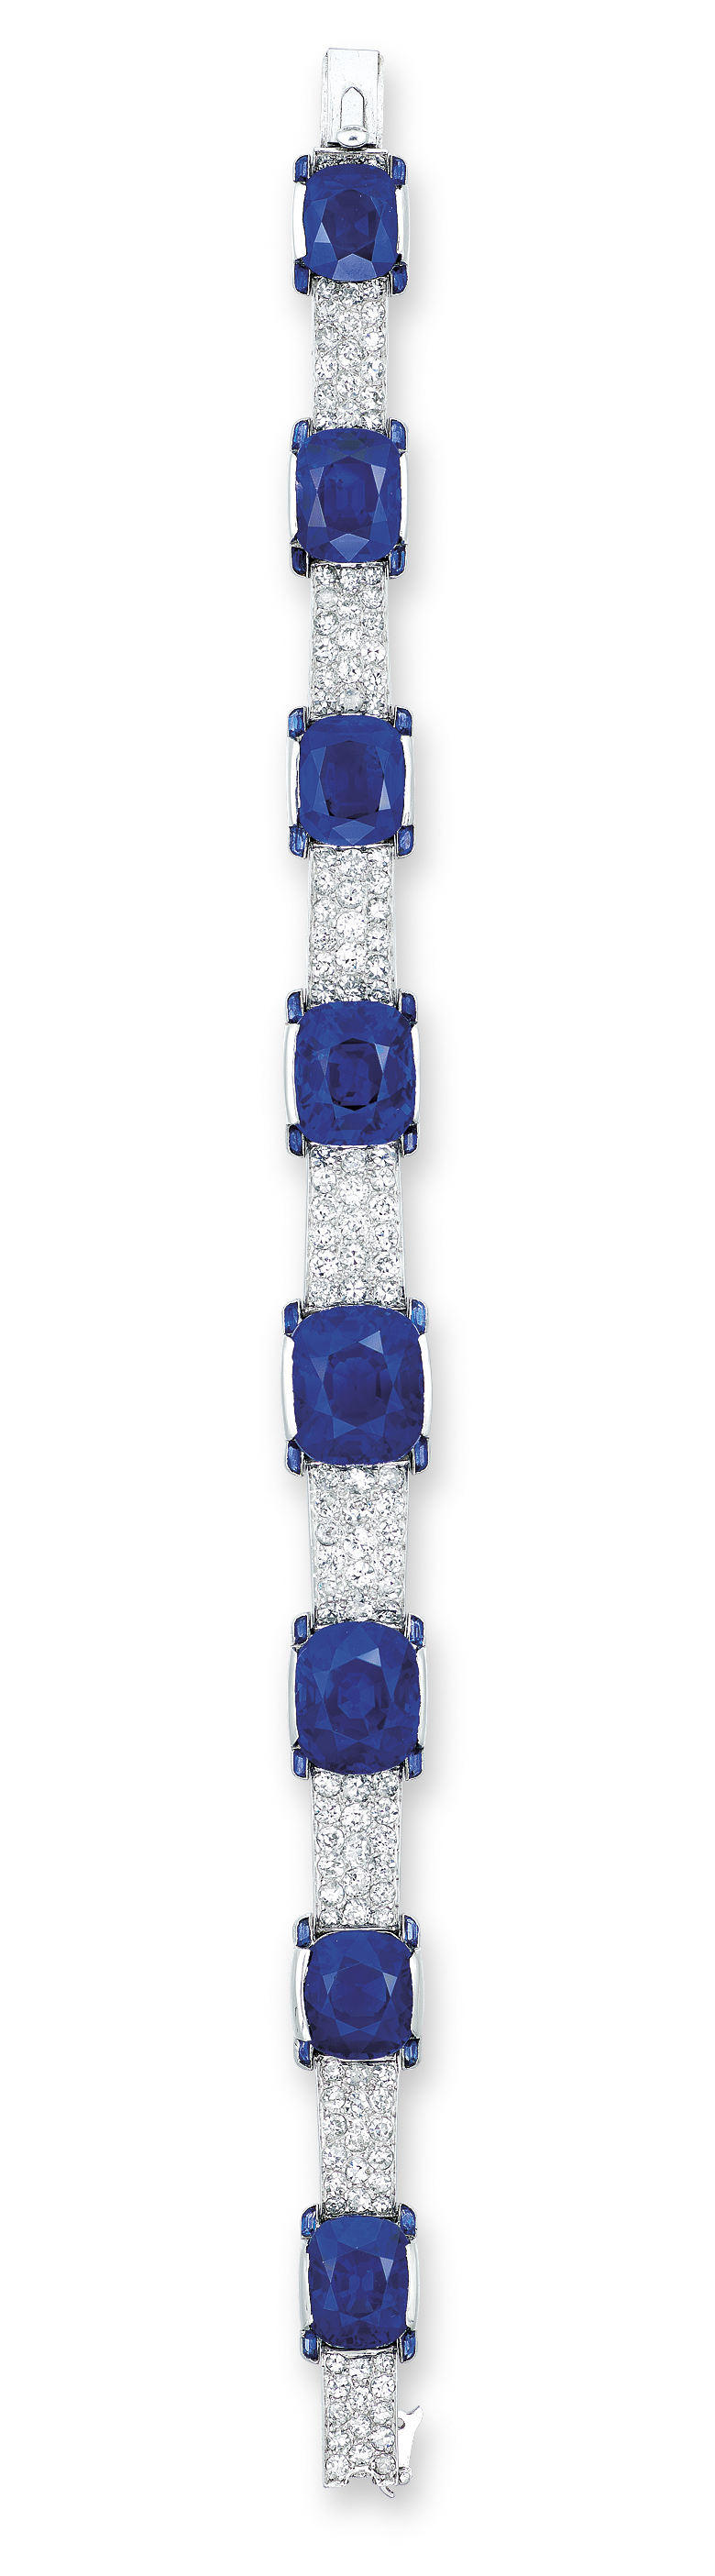 AN EXCEPTIONAL ART DECO SAPPHIRE AND DIAMOND BRACELET, BY CARTIER